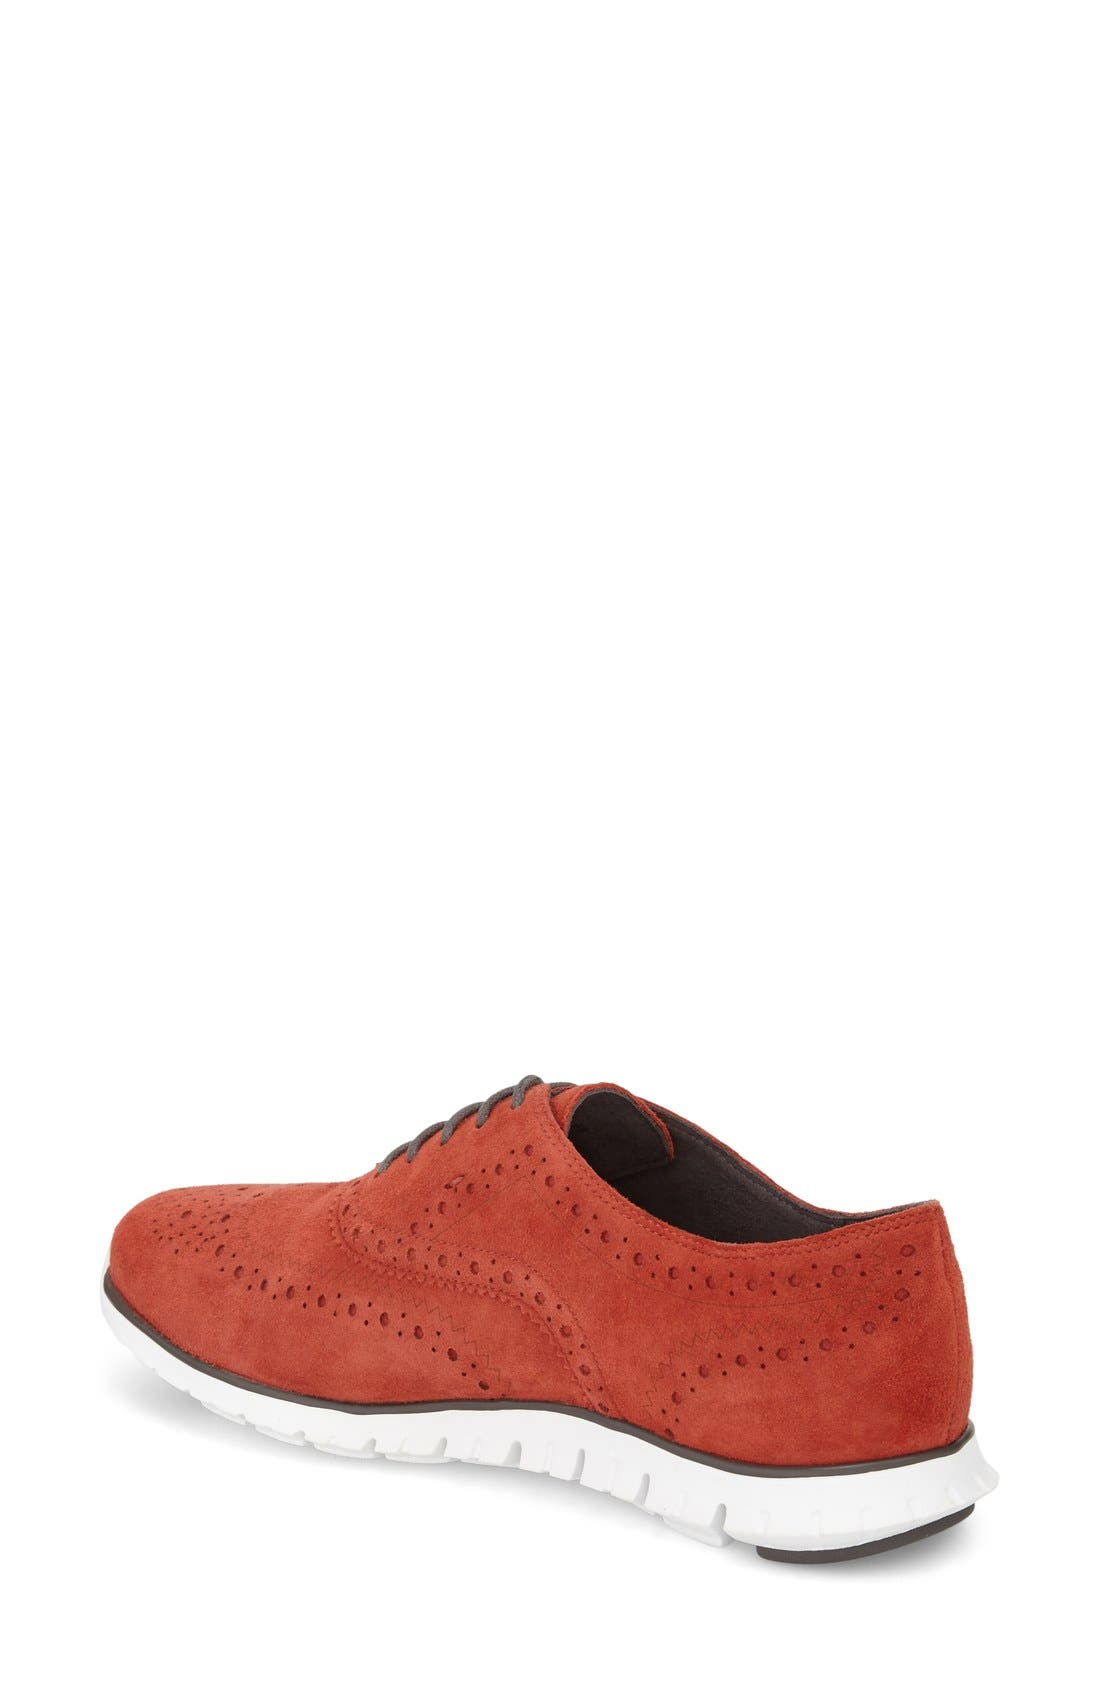 'ZeroGrand' Perforated Wingtip,                             Alternate thumbnail 61, color,